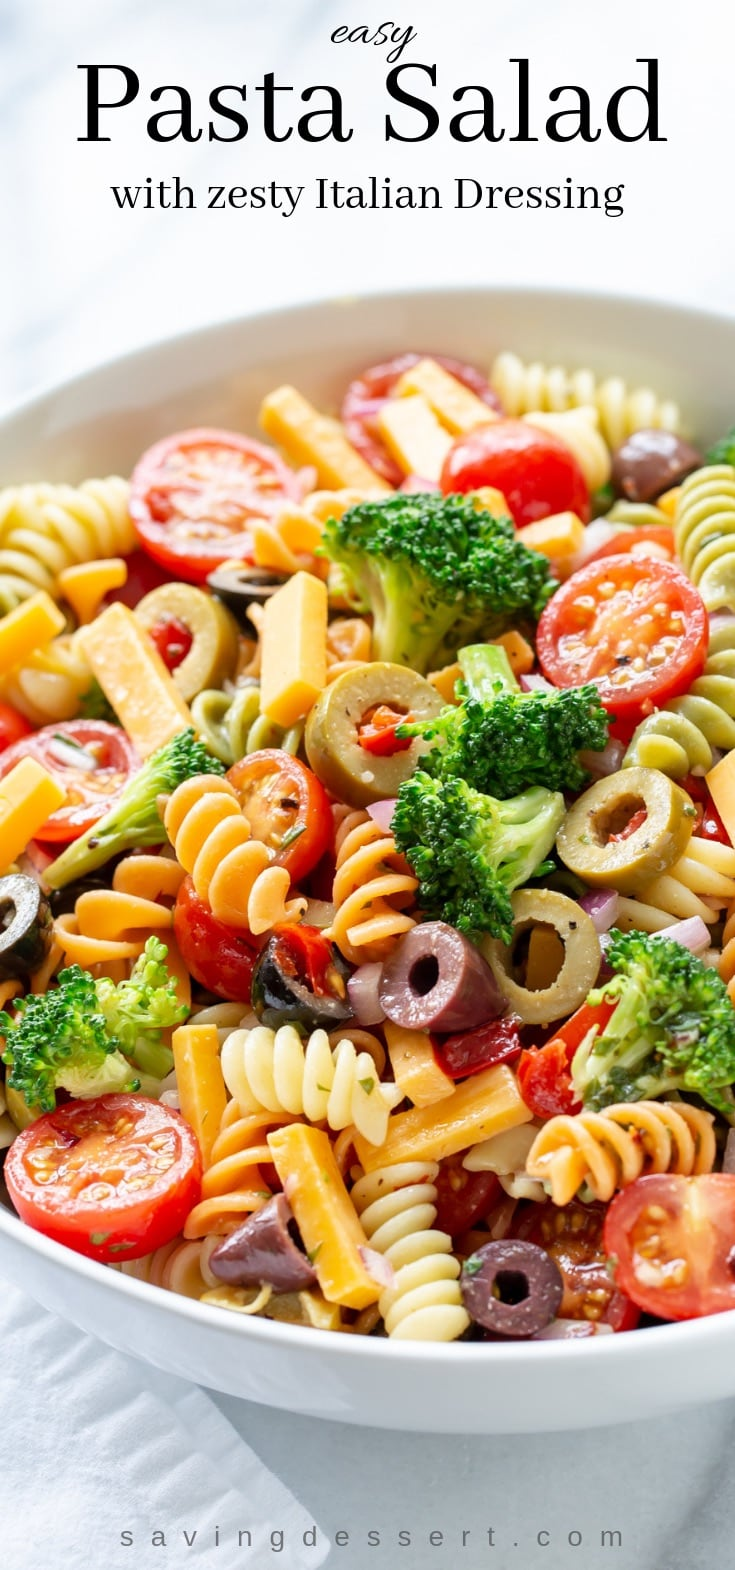 A large bowl of pasta salad with tomatoes, olives, broccoli and cheese